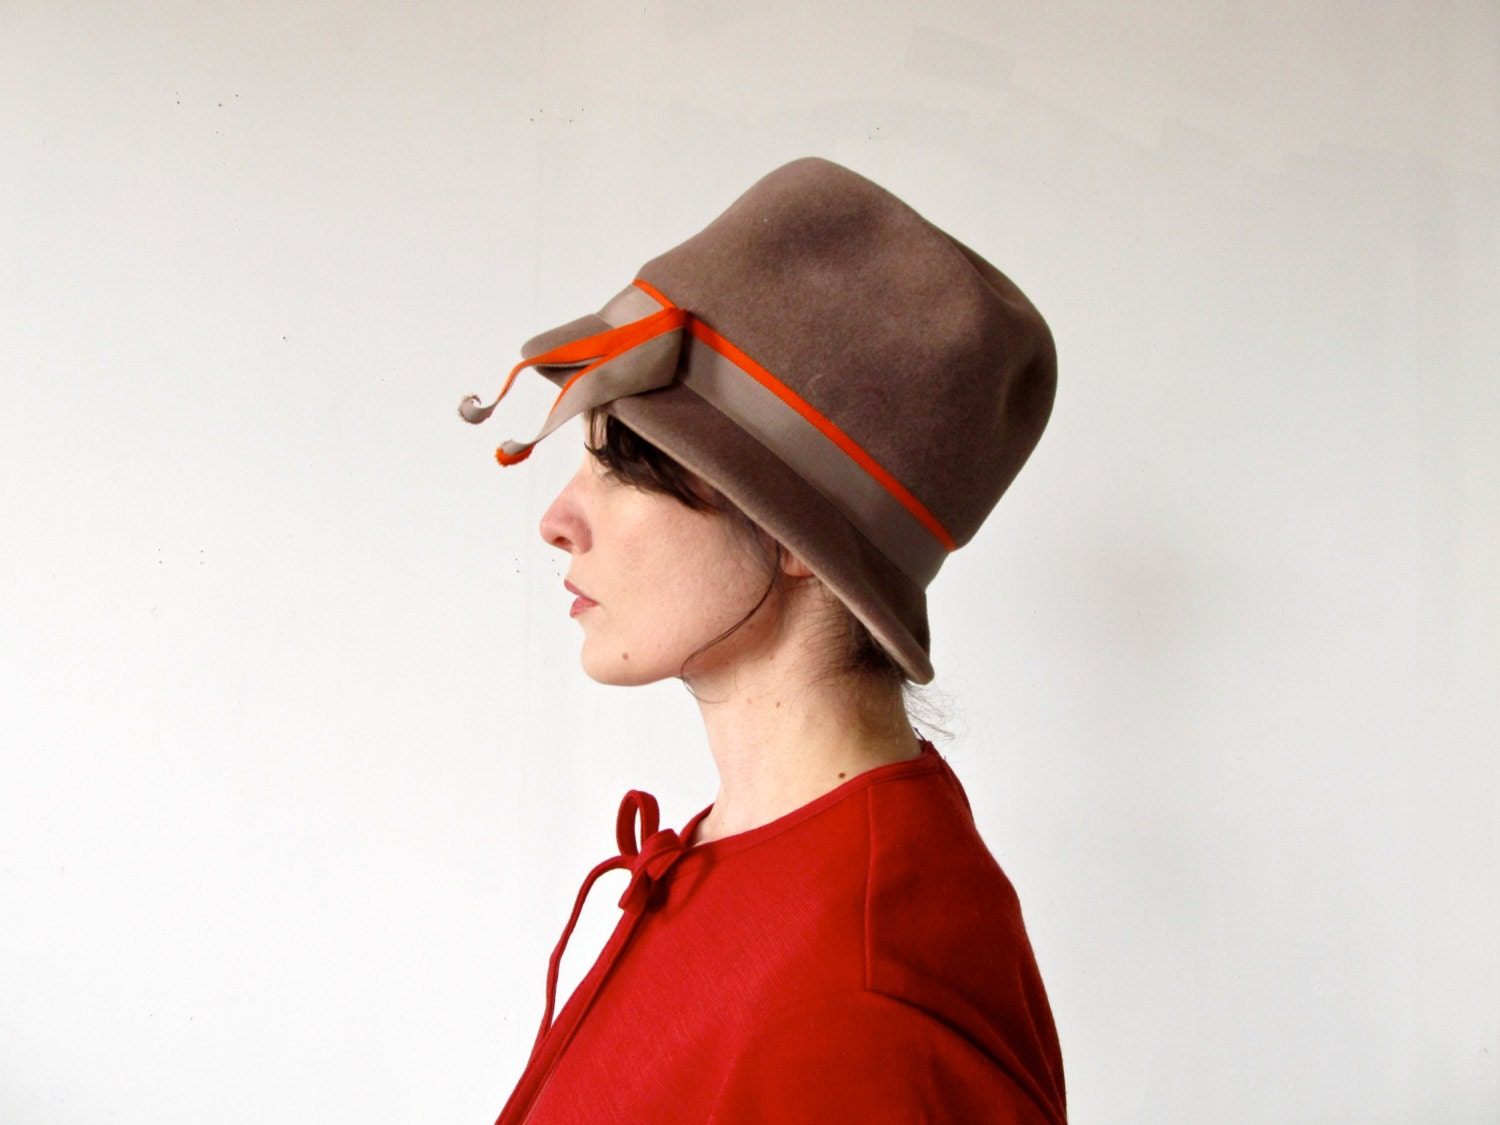 Vintage 40s Hat .  Hot Chocolate Brown Felted Wool Cloche Hat with Orange Ribbon - GinnyandHarriot